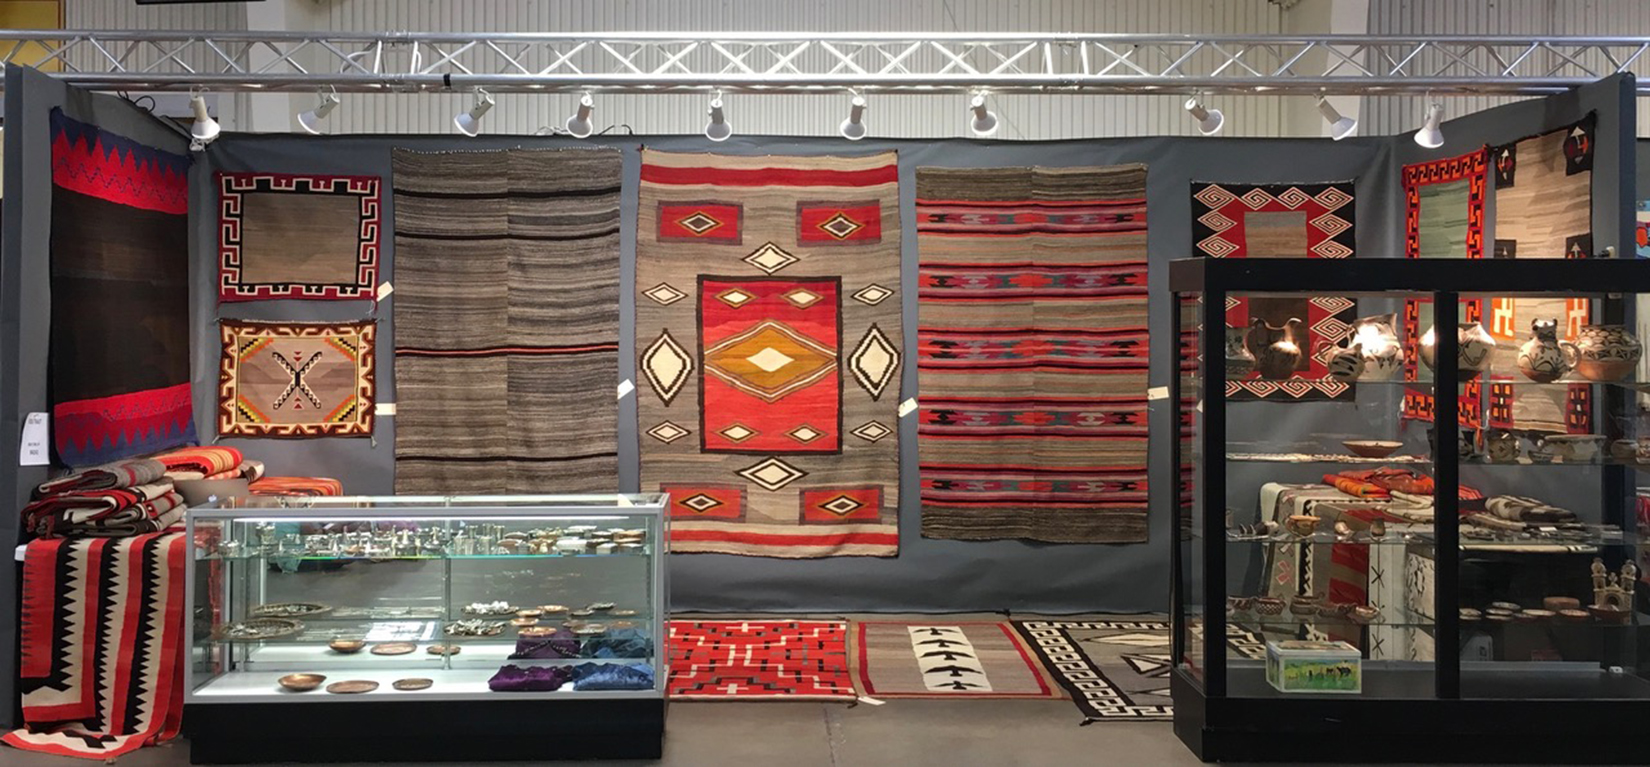 Great southwestern antique and vintage show at manuel for Craft shows in albuquerque 2017